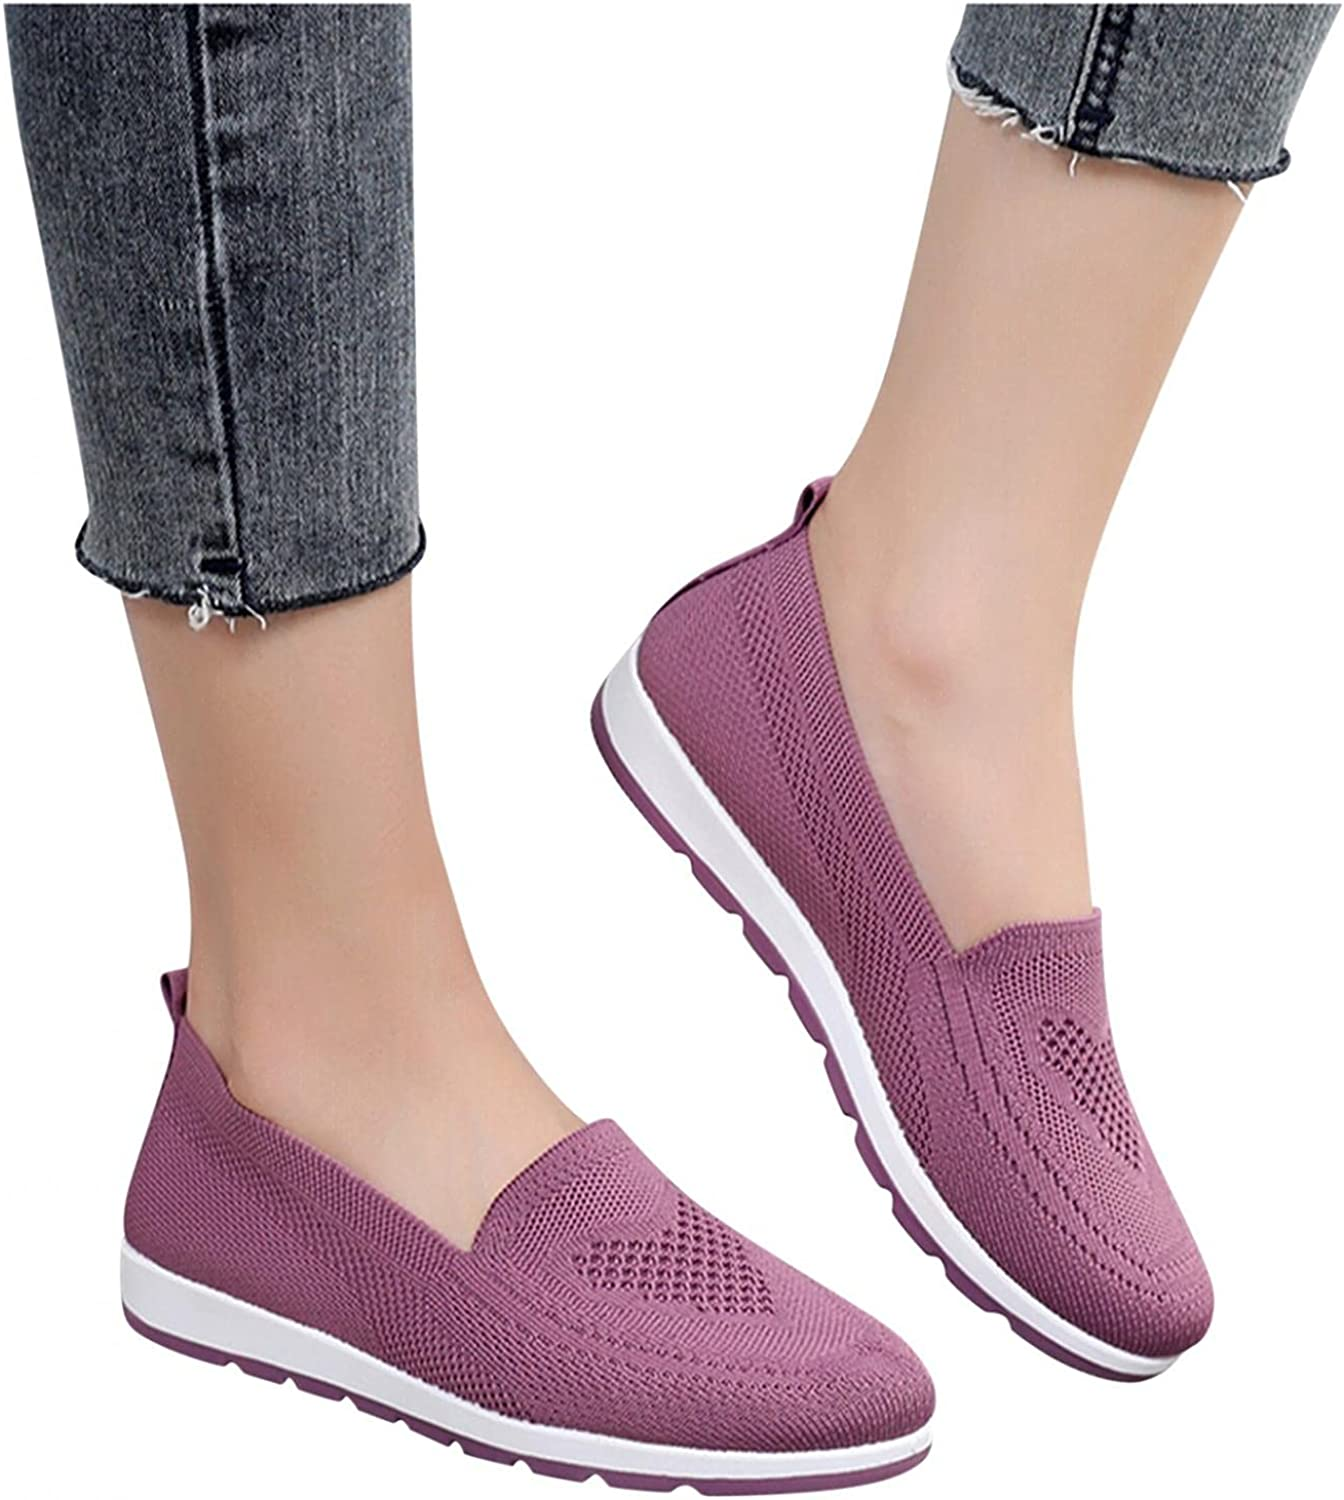 siilsaa Womens Casual Kansas City Mall Very popular Walking Shoes Sneakers Canvas Lightweight